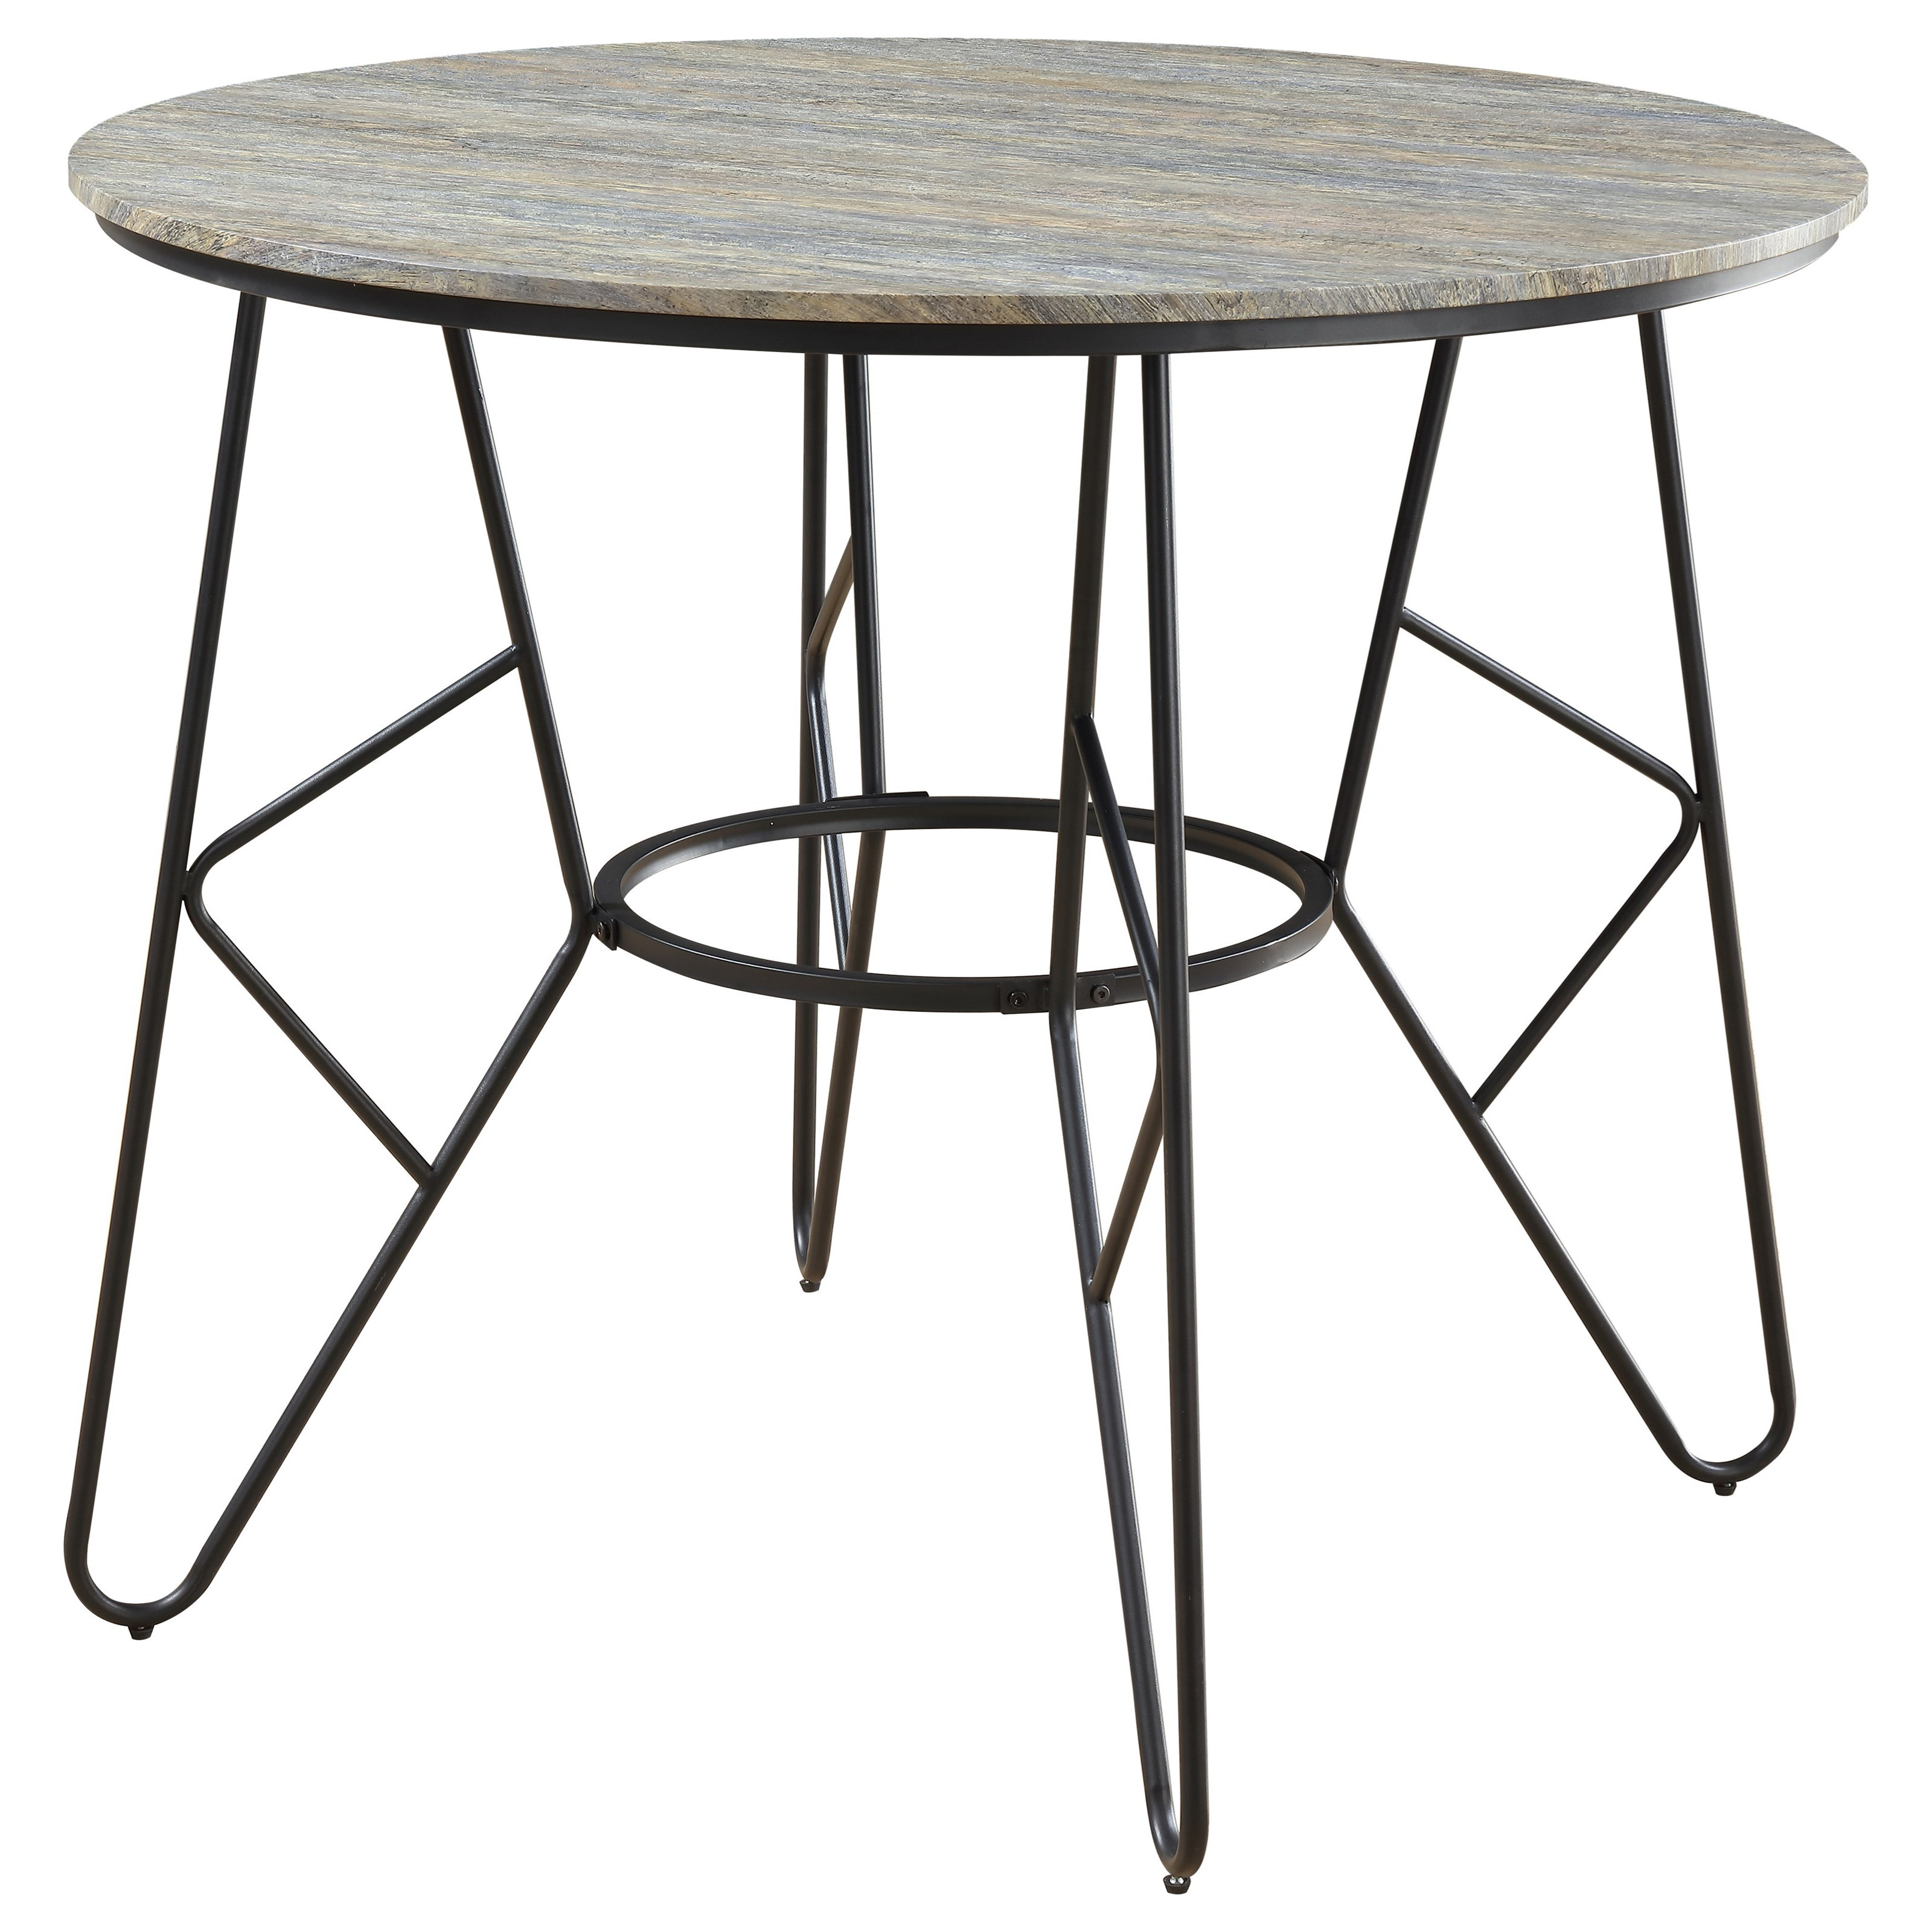 Emmett Round Counter Table by Emerald at Northeast Factory Direct